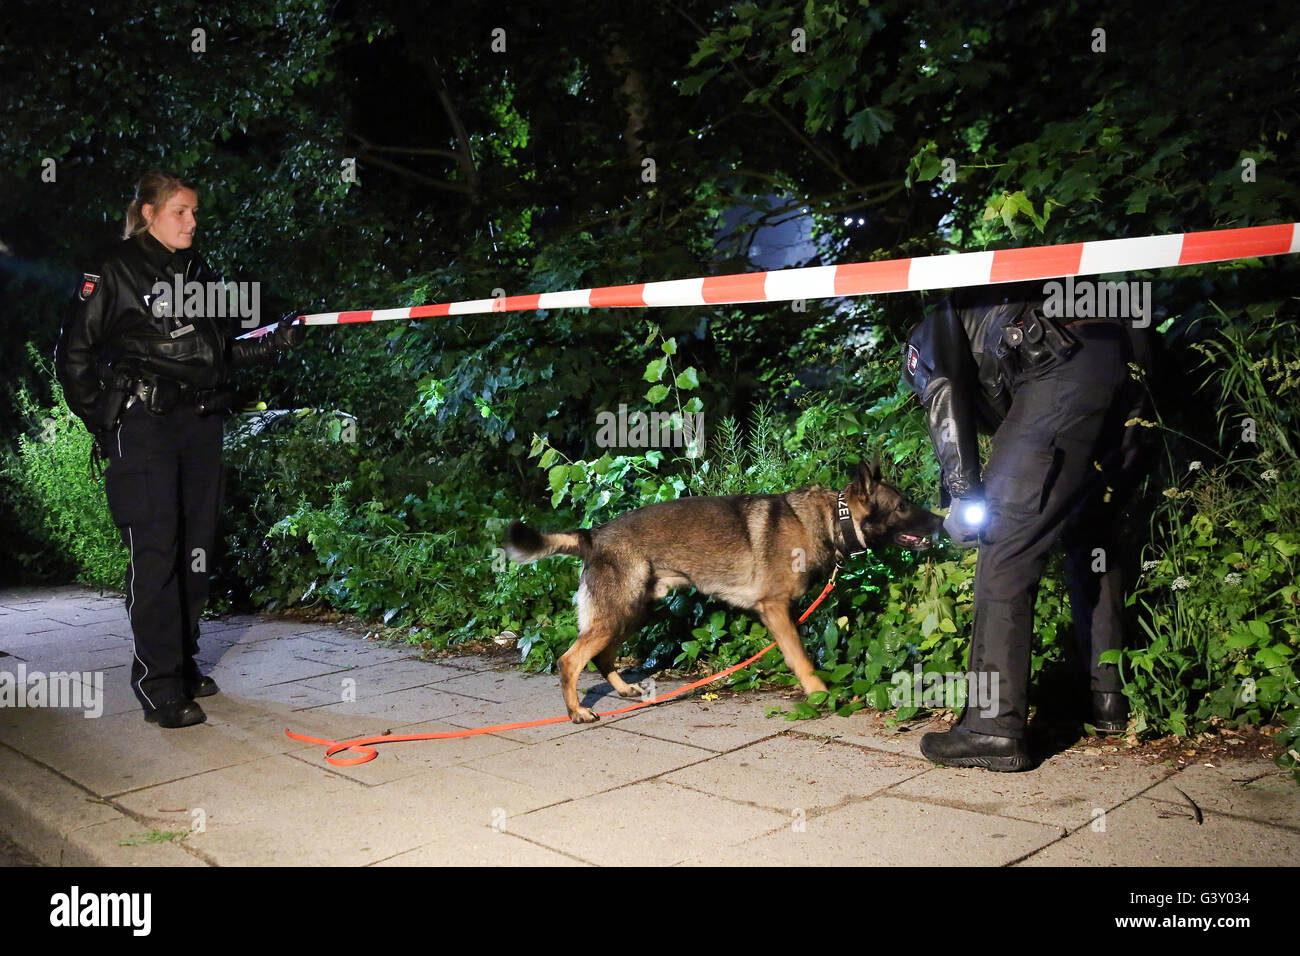 Hamburg-Schnelsen, Germany. 16th June, 2016. Policemen search for clues with a dog in front of a house, in which - Stock Image